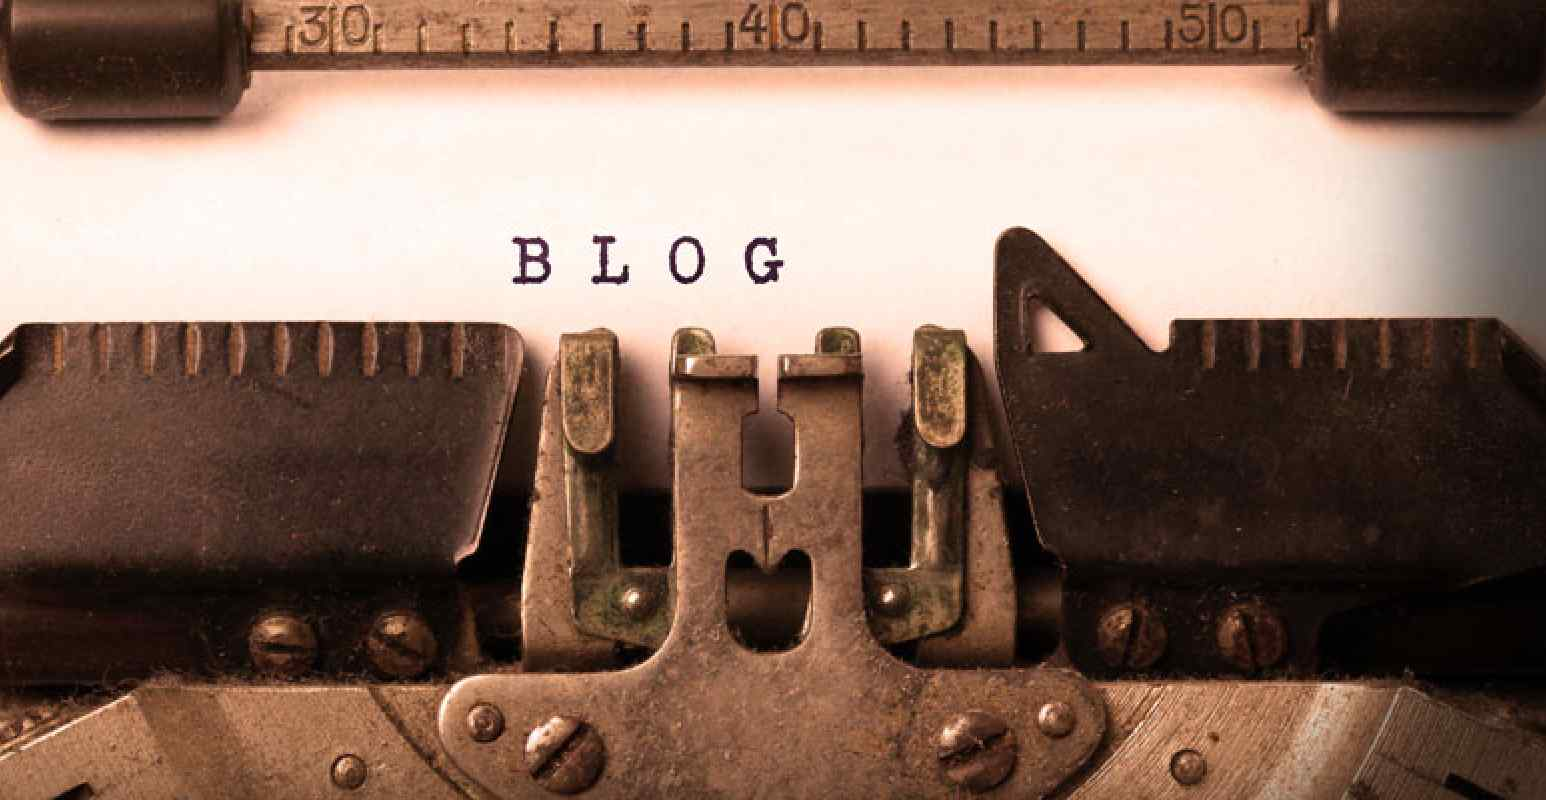 Bloggen blueblot web & design